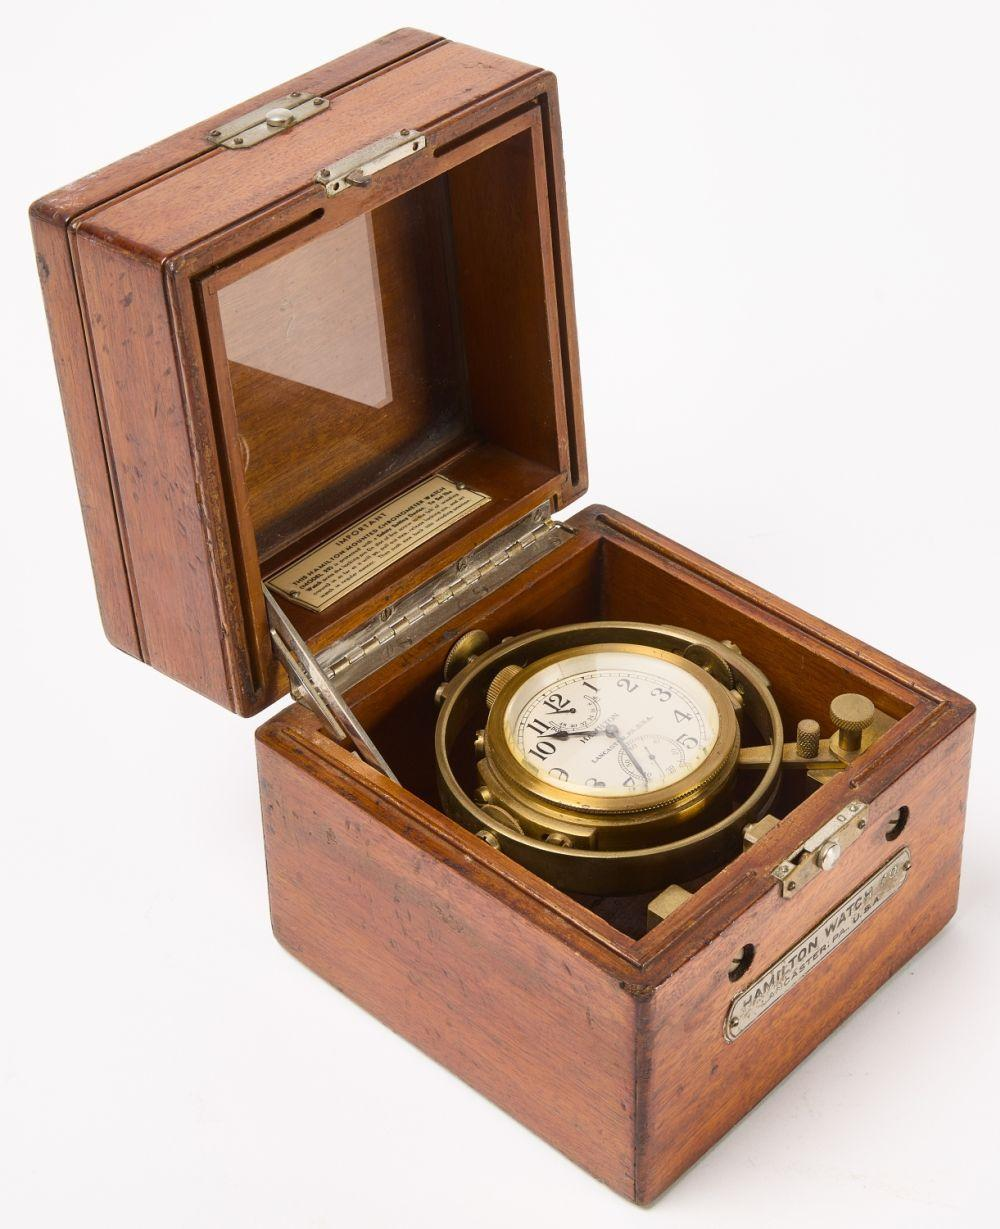 Hamilton Mounted Chronometer Watch in Wood Case.